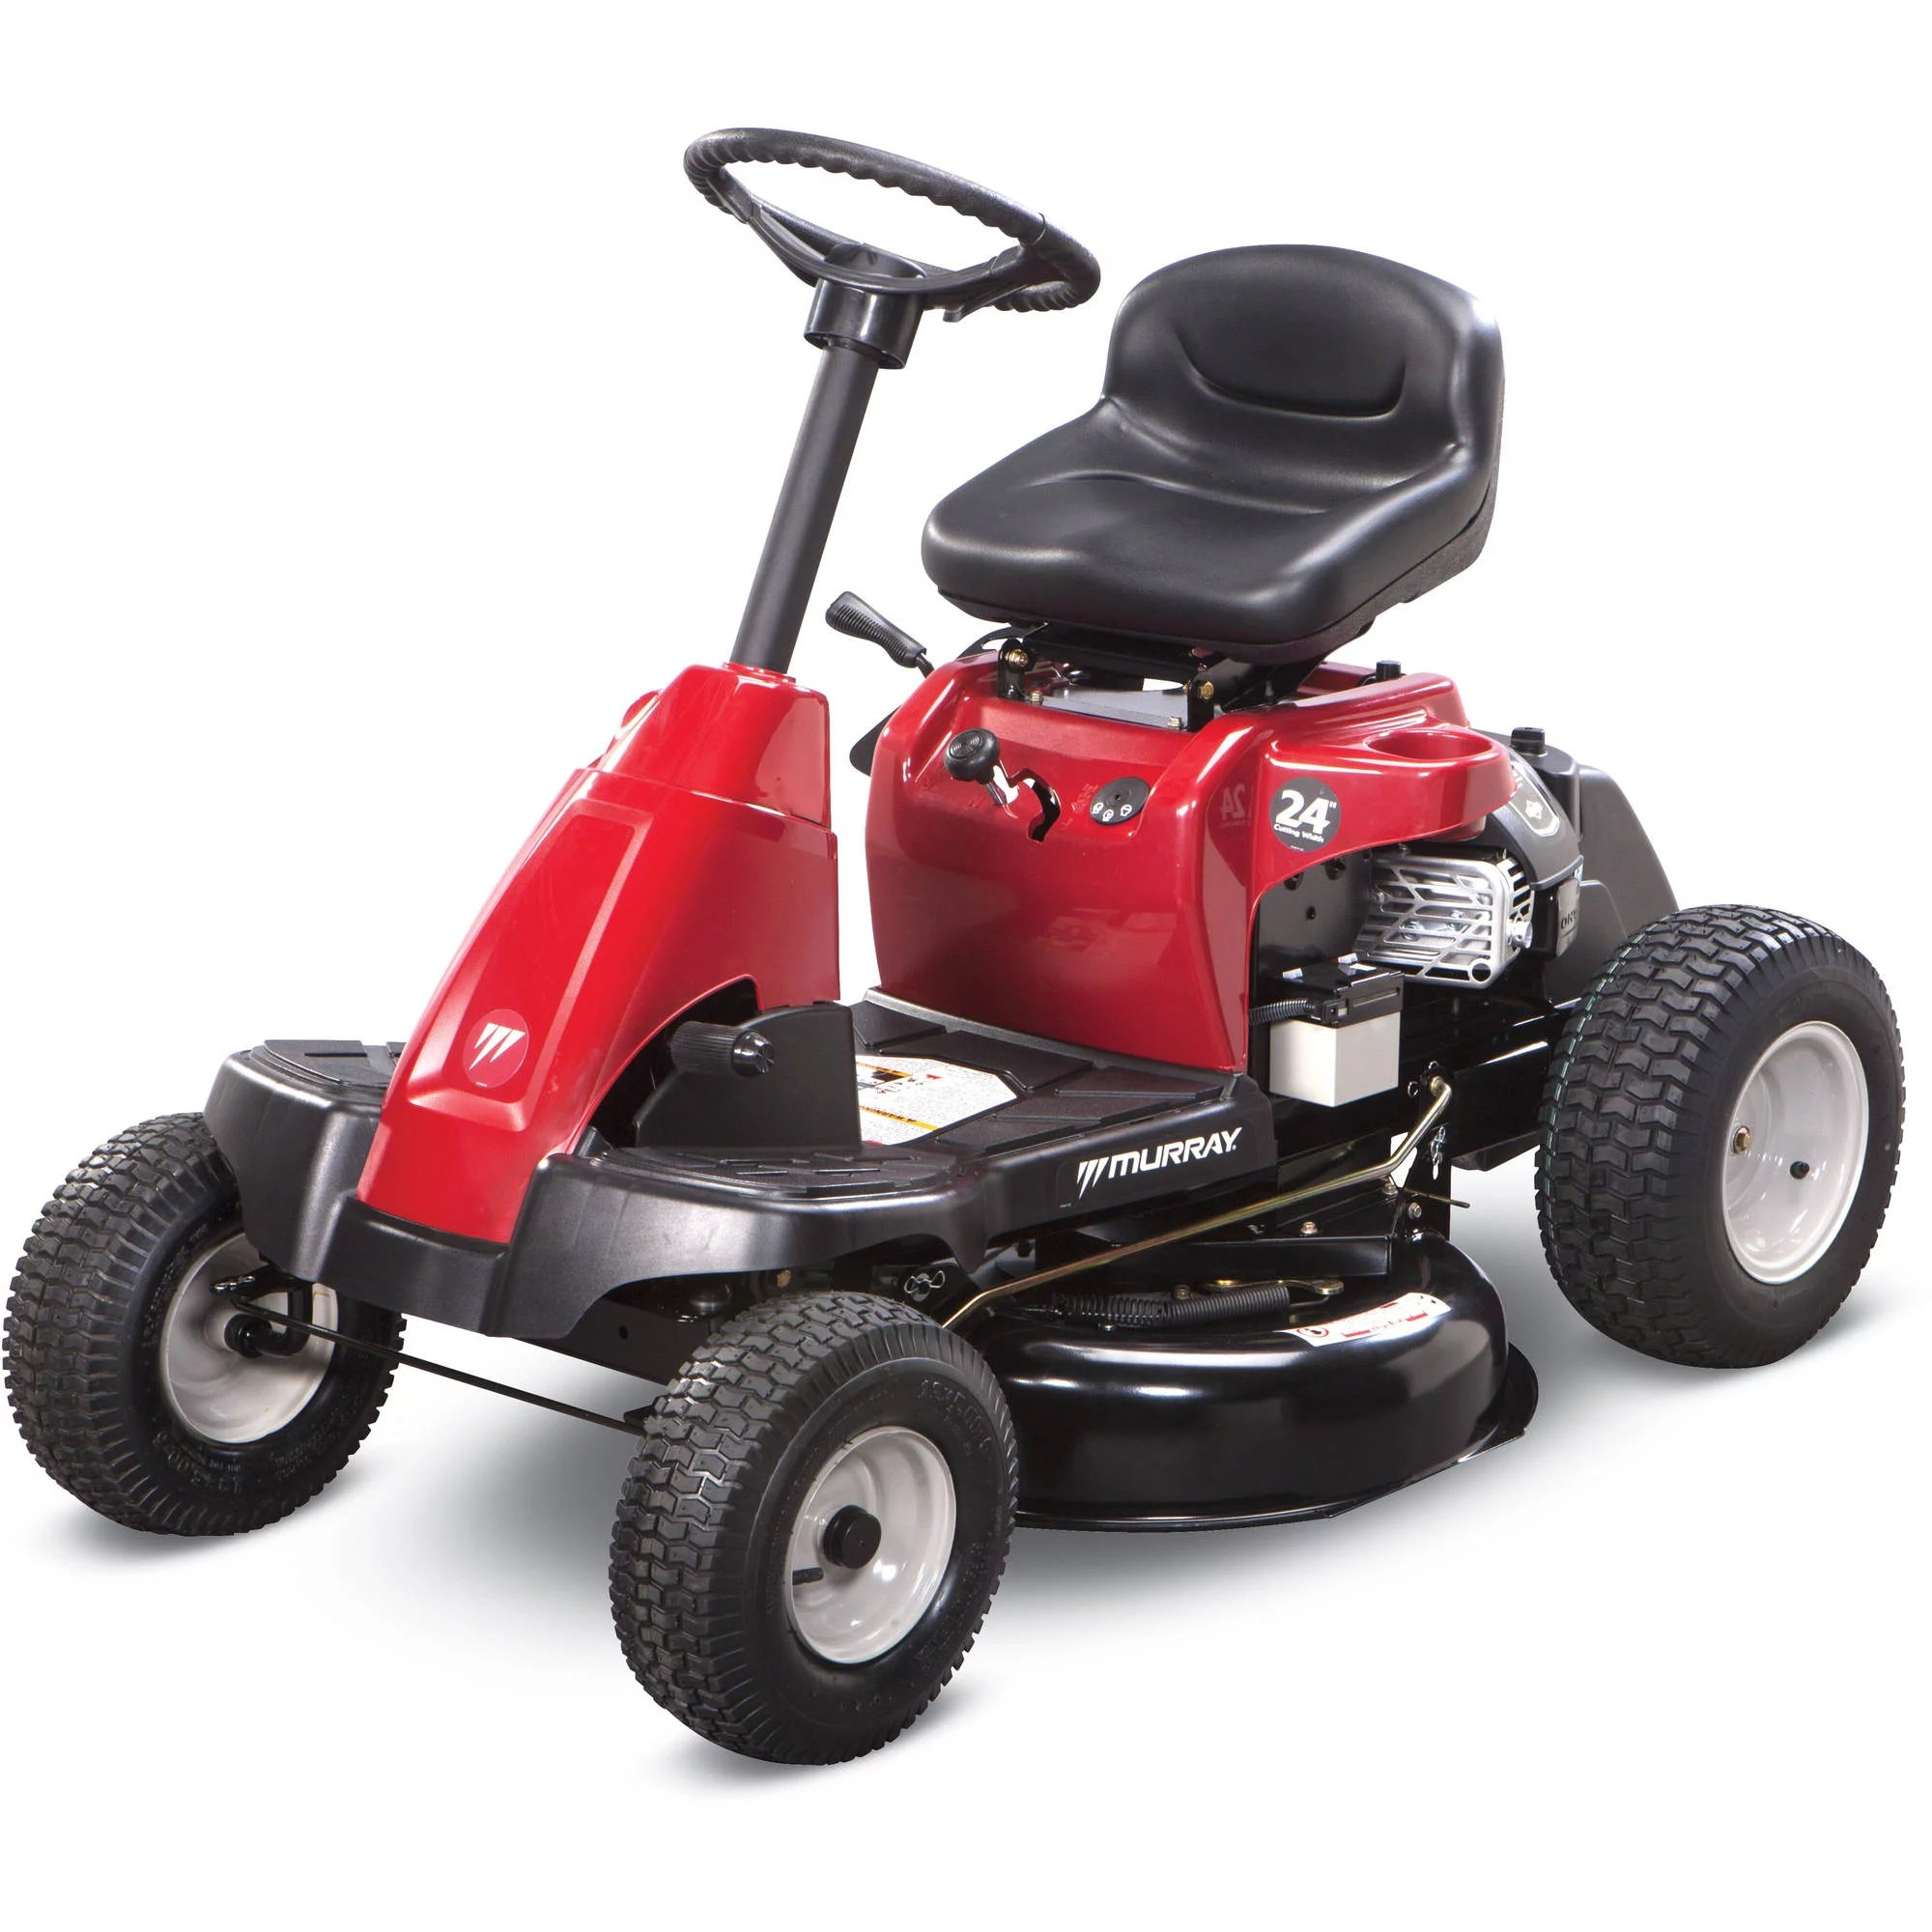 Murray 24 Rear Engine Riding Mower With Mulch Kit Walmart Com Walmart Com